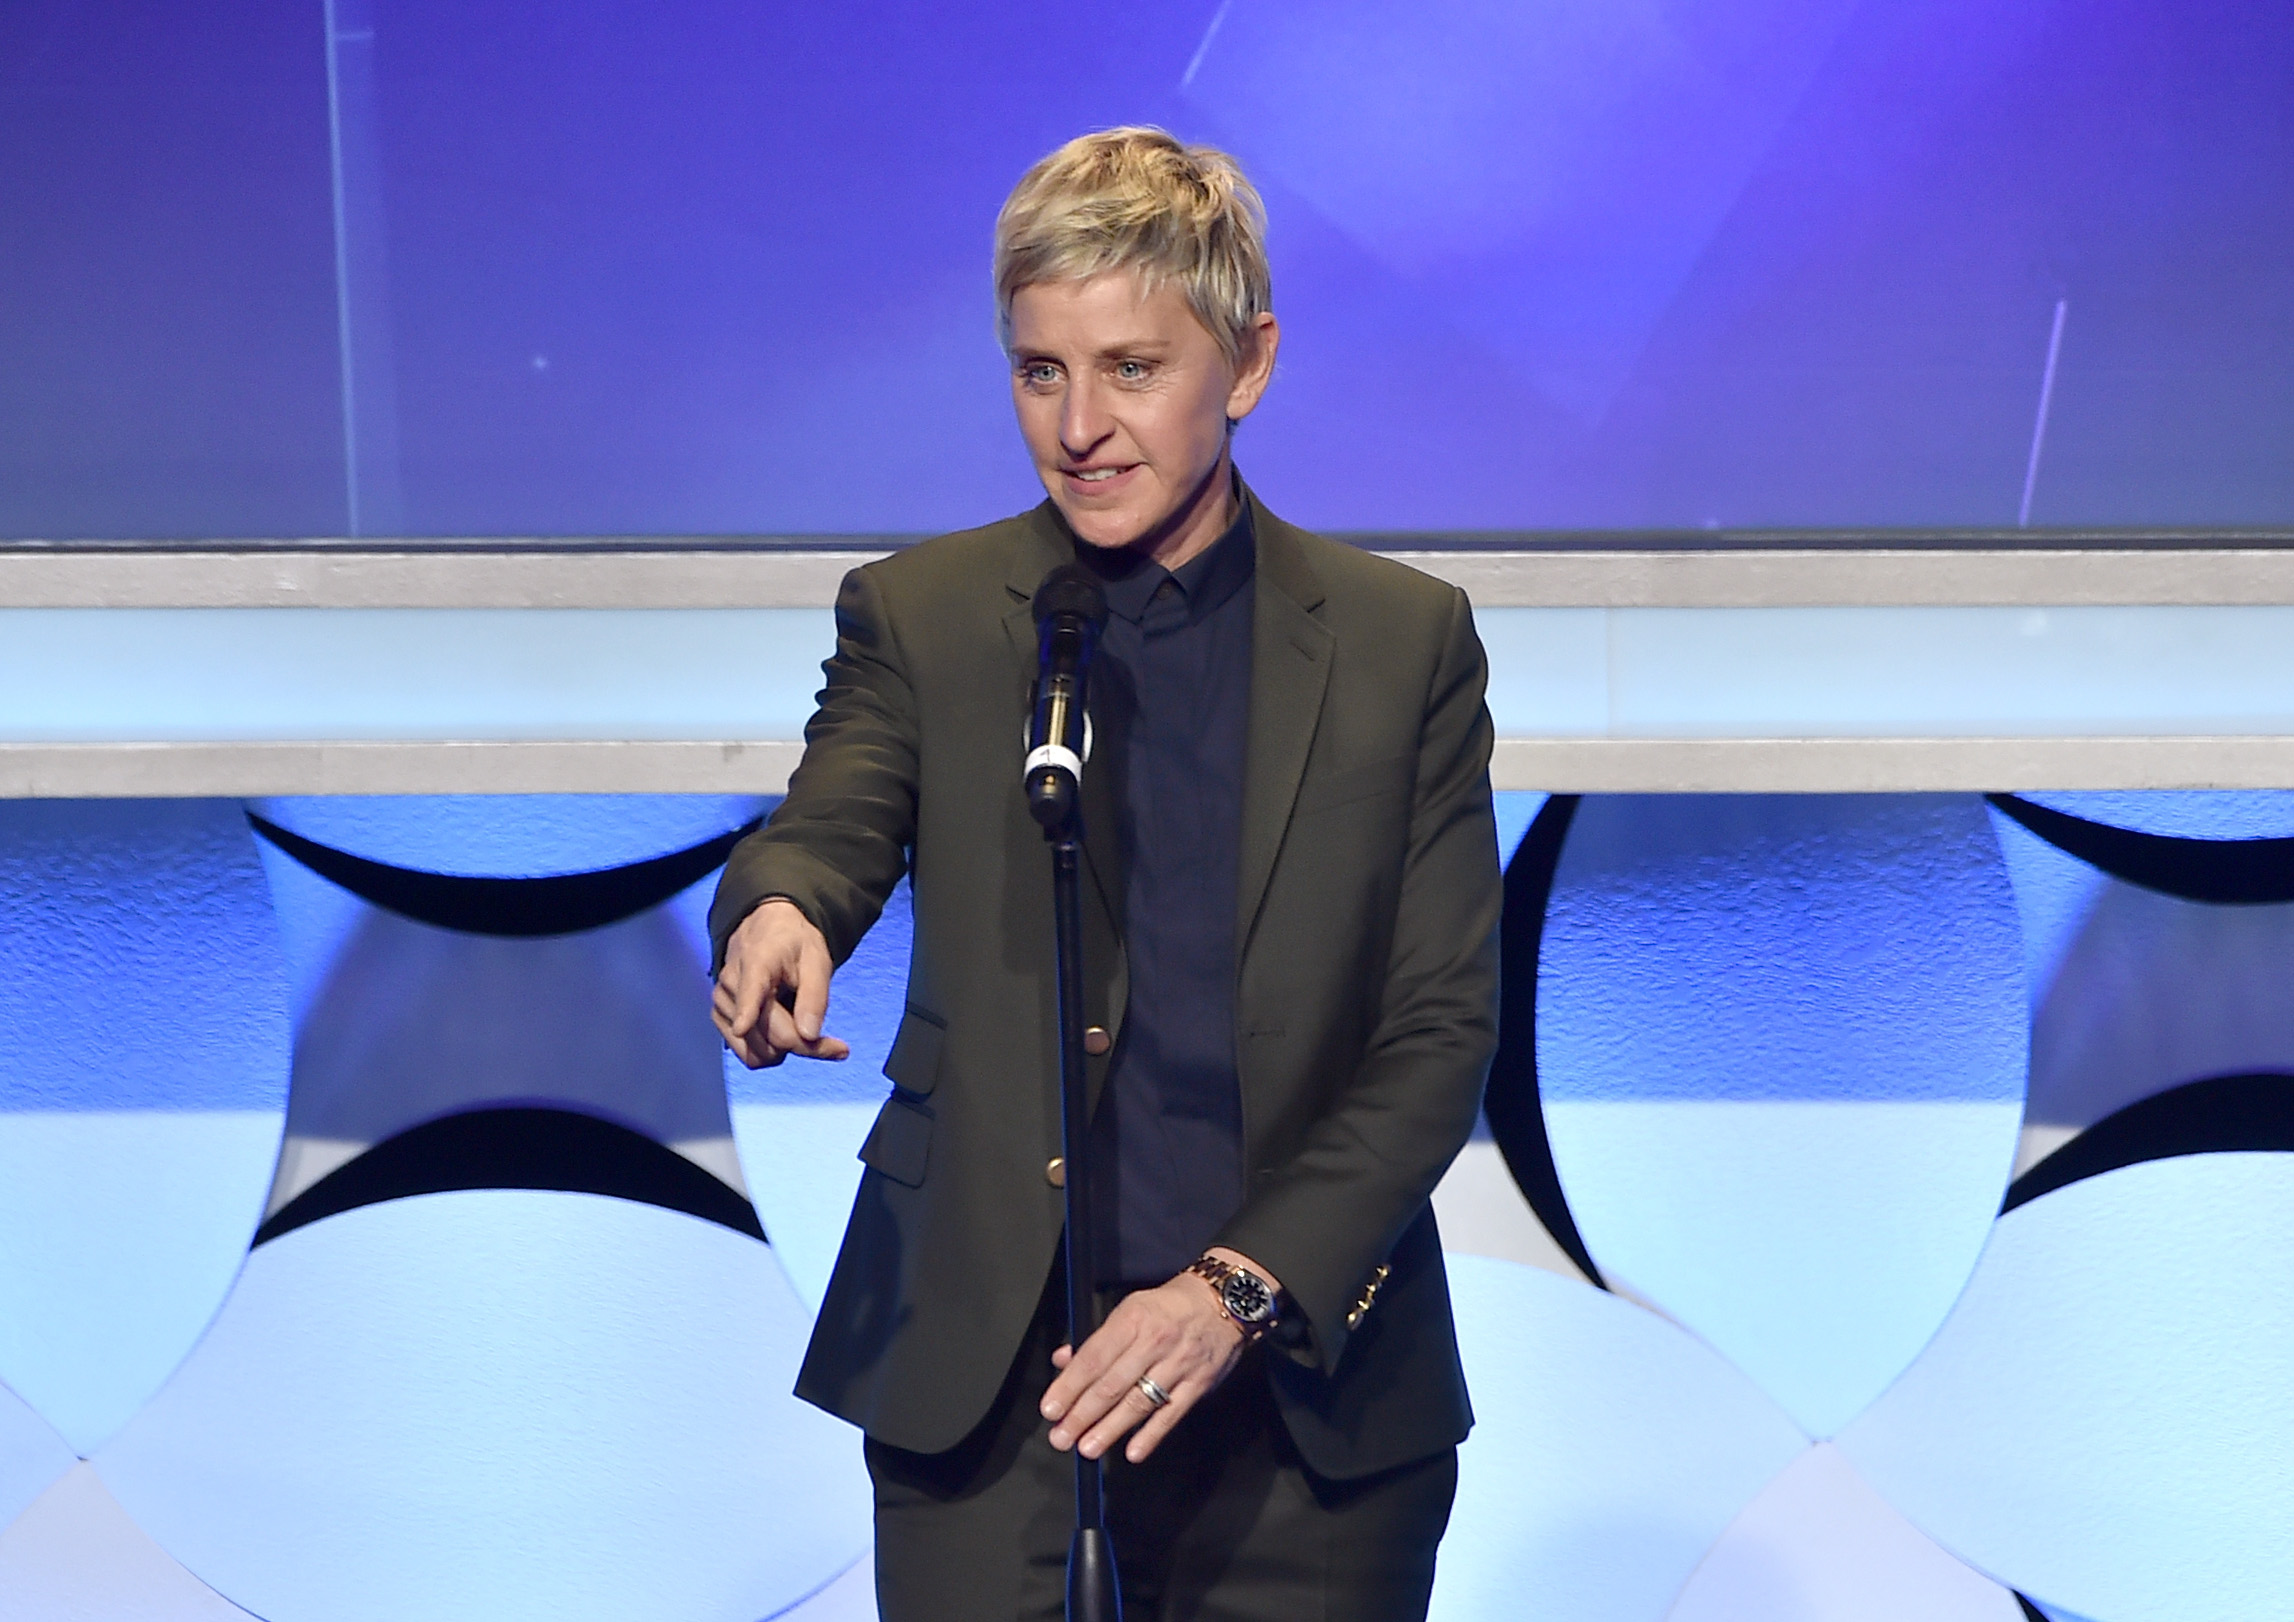 BEVERLY HILLS, CA - MARCH 21:  TV personality Ellen DeGeneres speaks onstage during the 26th Annual GLAAD Media Awards at The Beverly Hilton Hotel on March 21, 2015 in Beverly Hills, California.  (Photo by Kevin Winter/Getty Images for GLAAD)